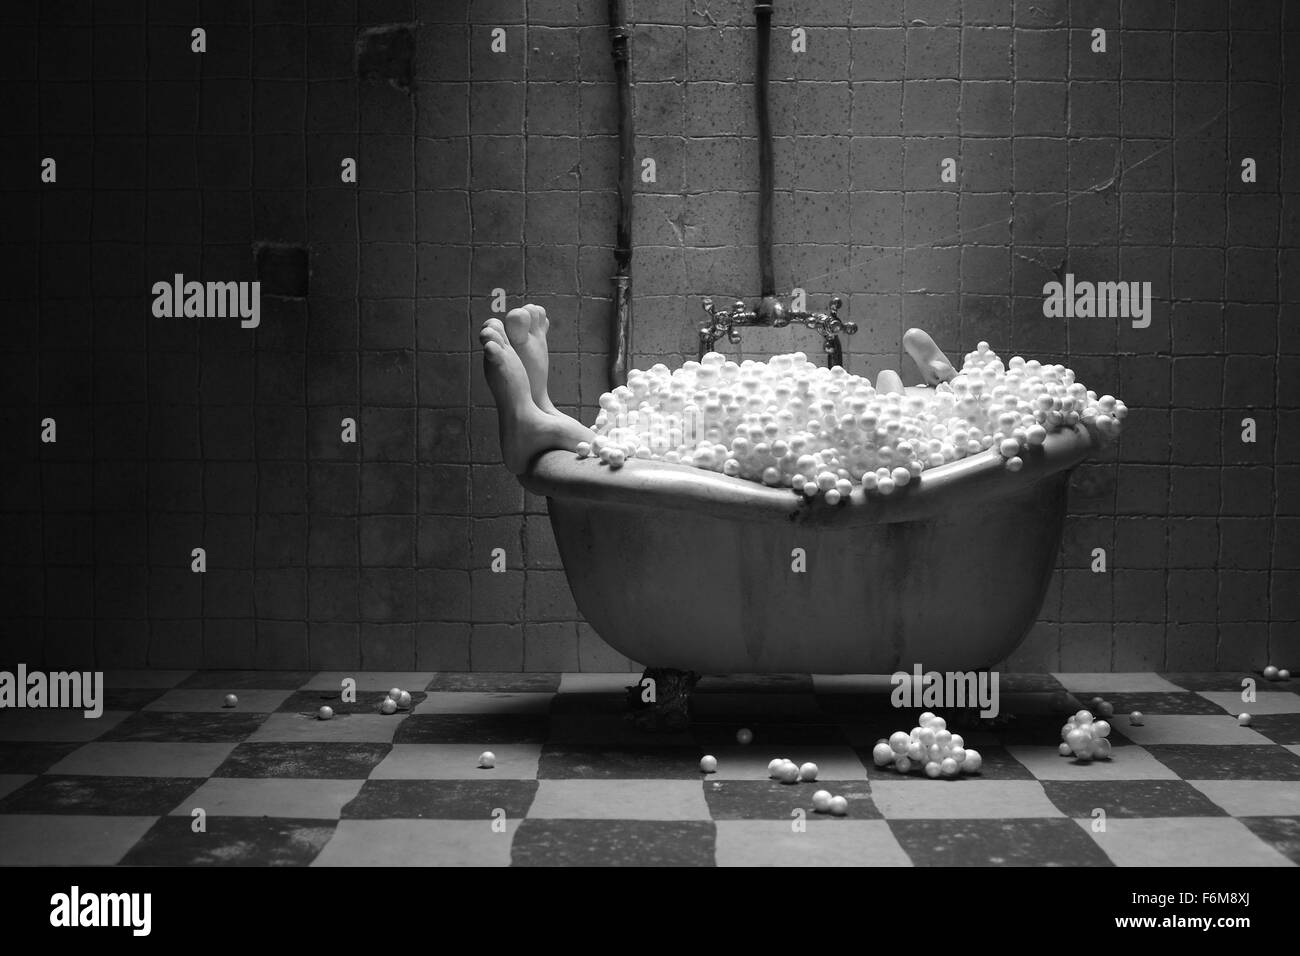 Release Date January 15 2009 Movie Title Mary And Max Studio Stock Photo Alamy